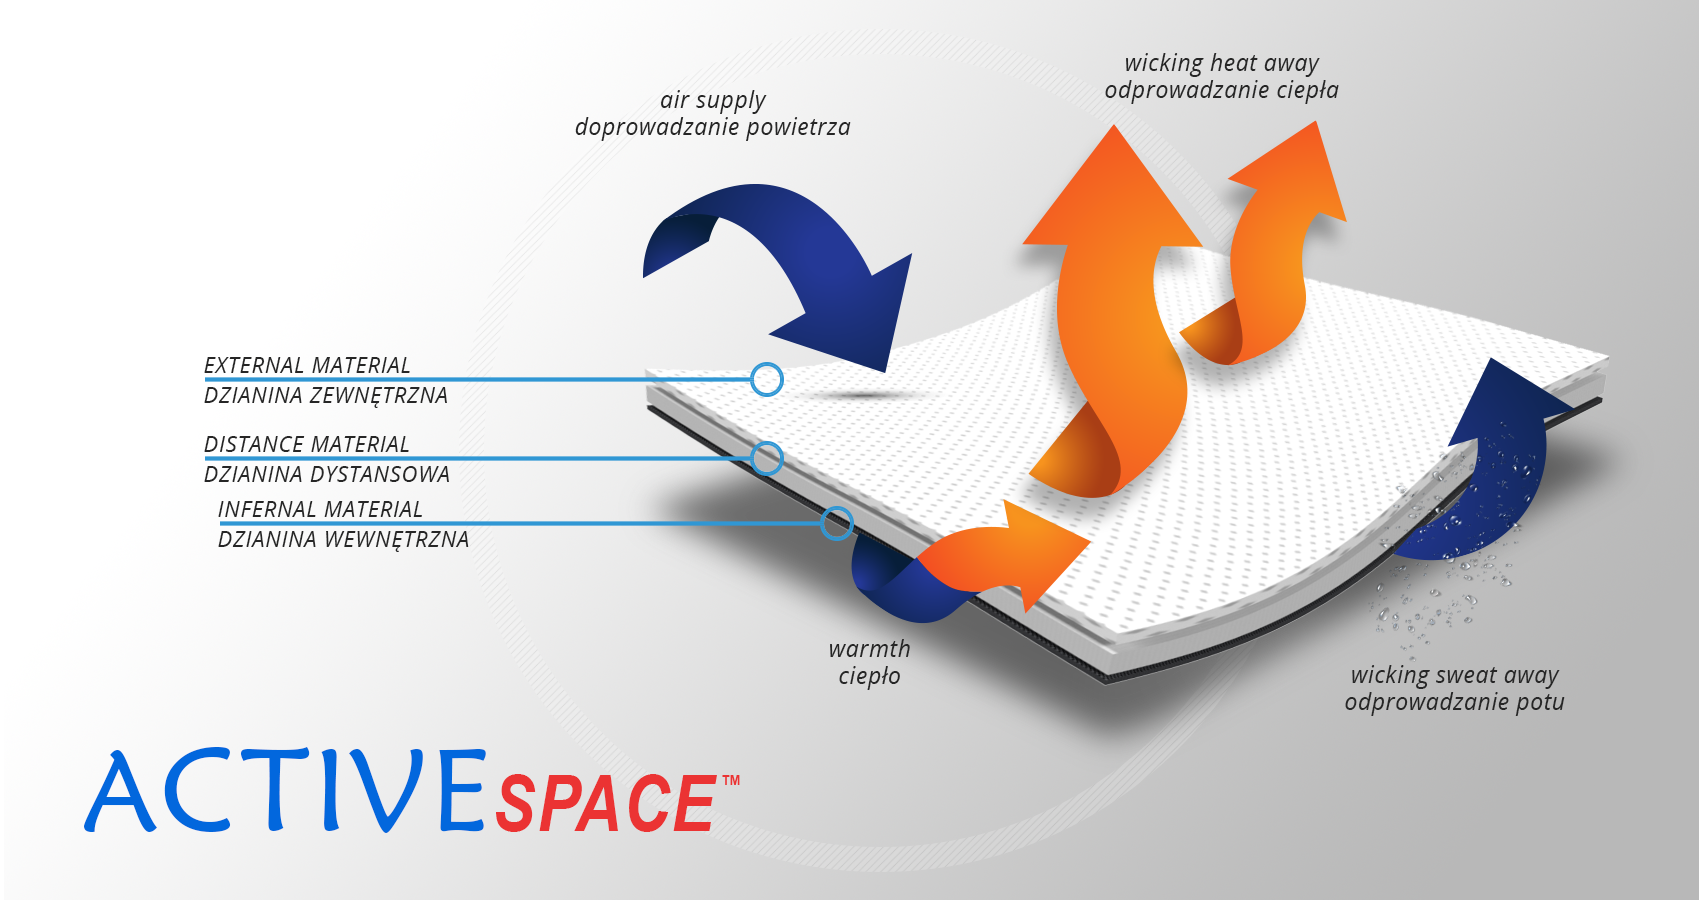 ACTIVE-SPACE